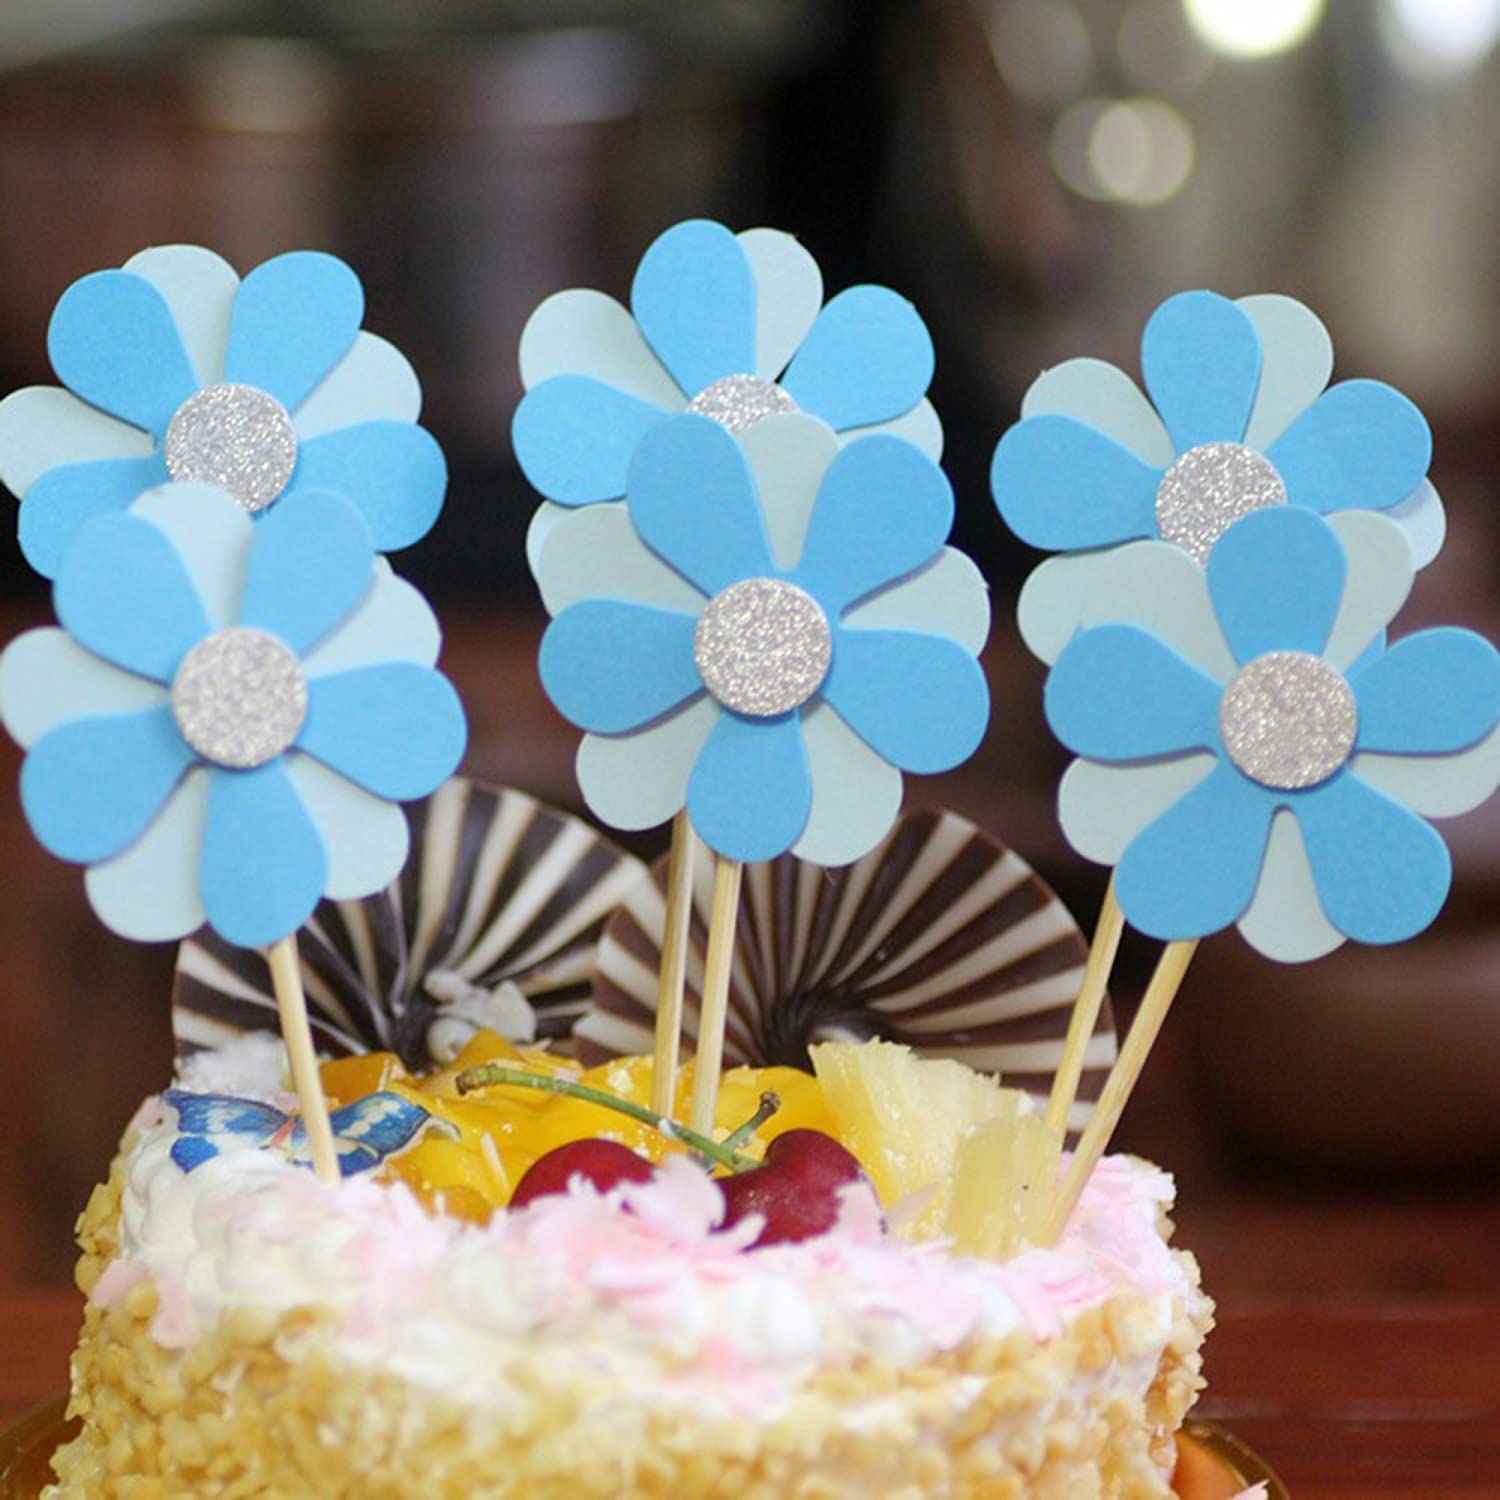 NOMSOCR 6Pcs Beautiful Flowers Cupcake Cake Toppers Dessert Table Food Picks For Kids Birthday Party Decorations Supplies Blue Amazon Grocery